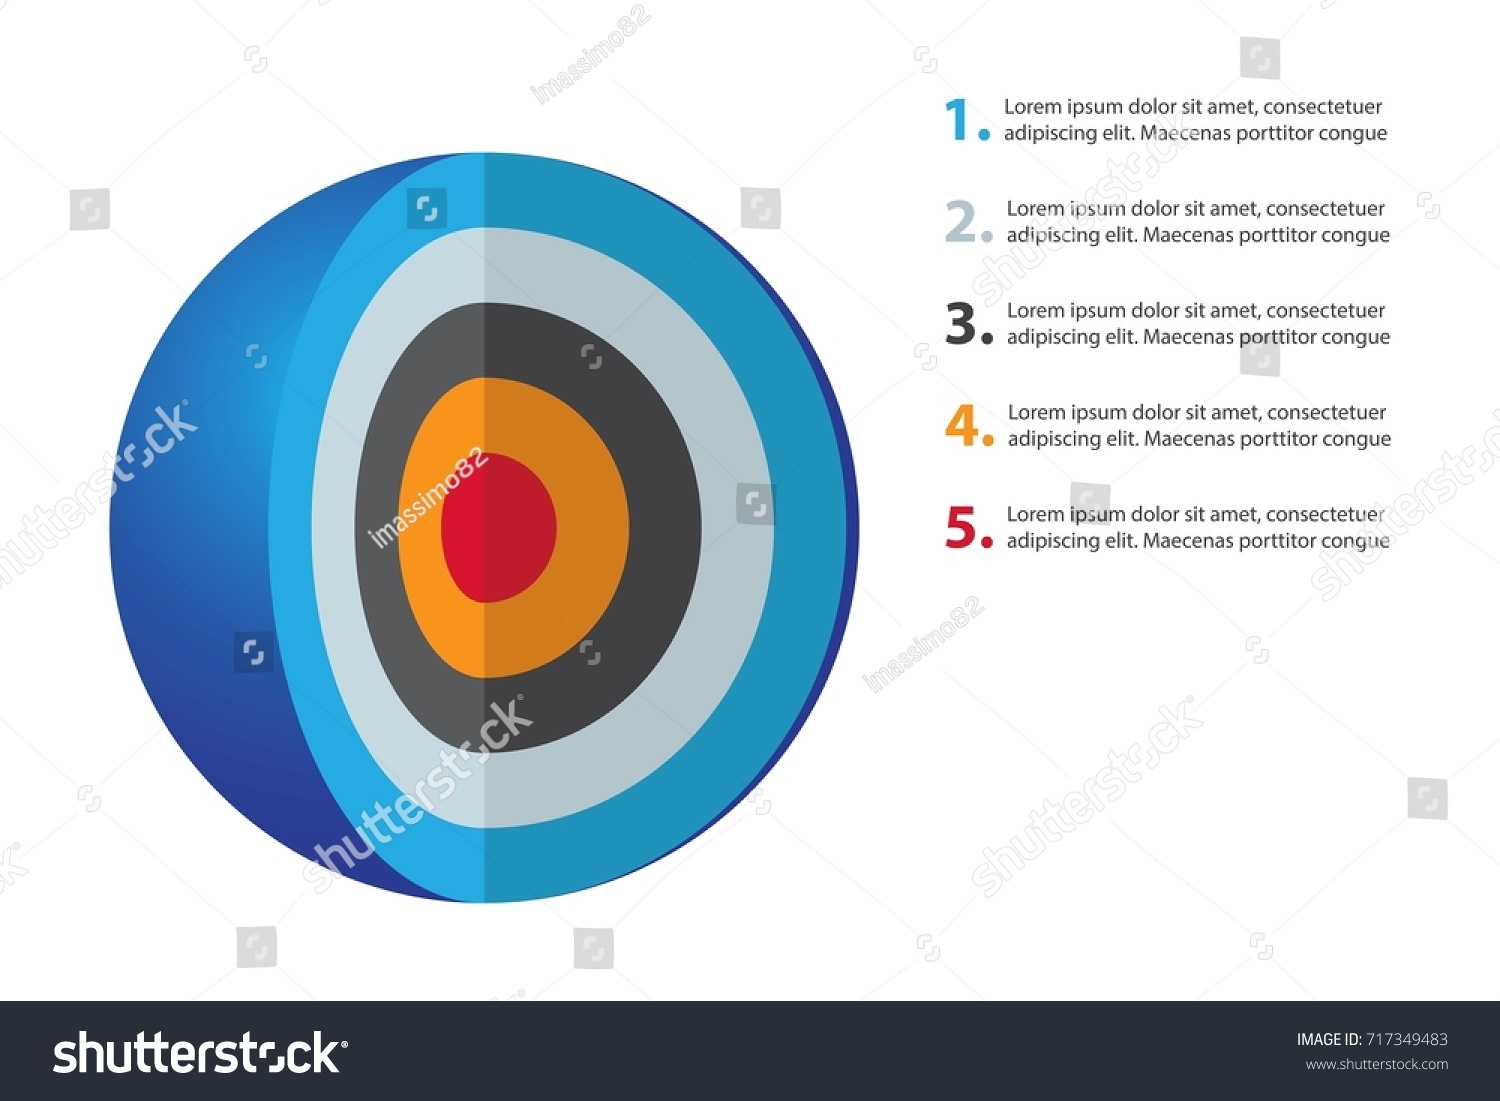 bullseye chart template - spherical diagram consisting 5 layers infographic stock